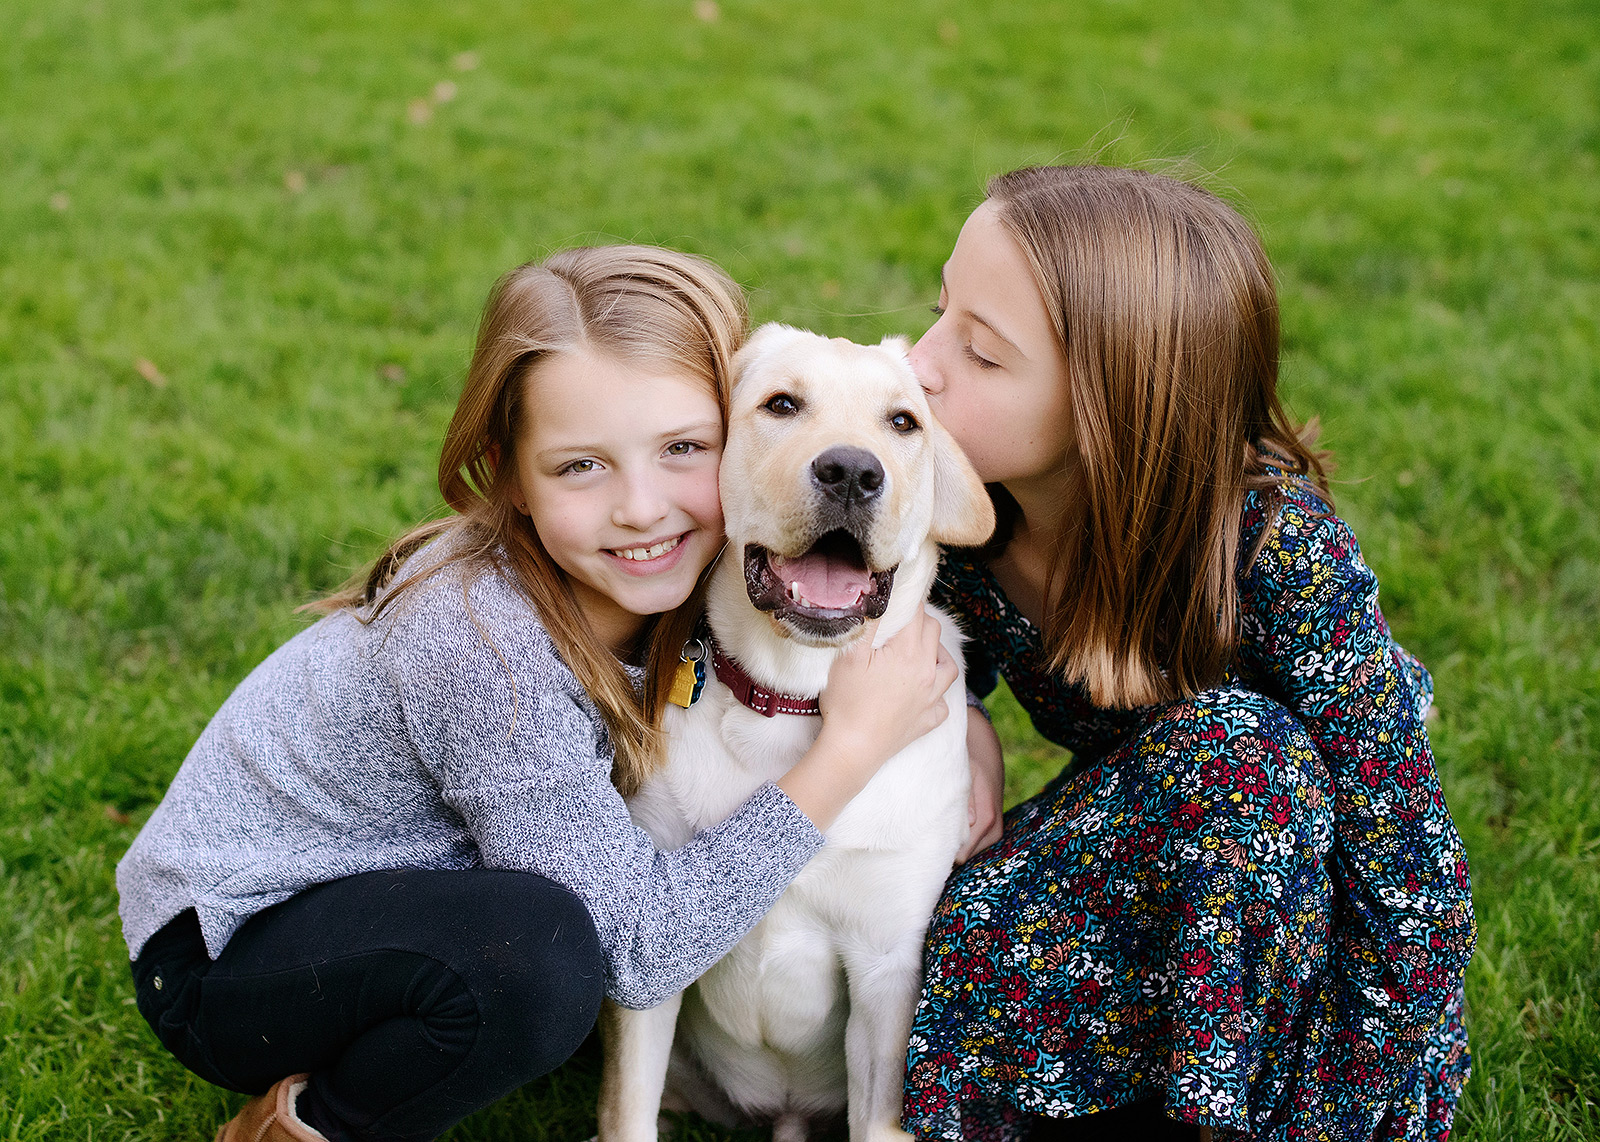 Sisters kissing yellow labrador dog outdoors in Saratoga